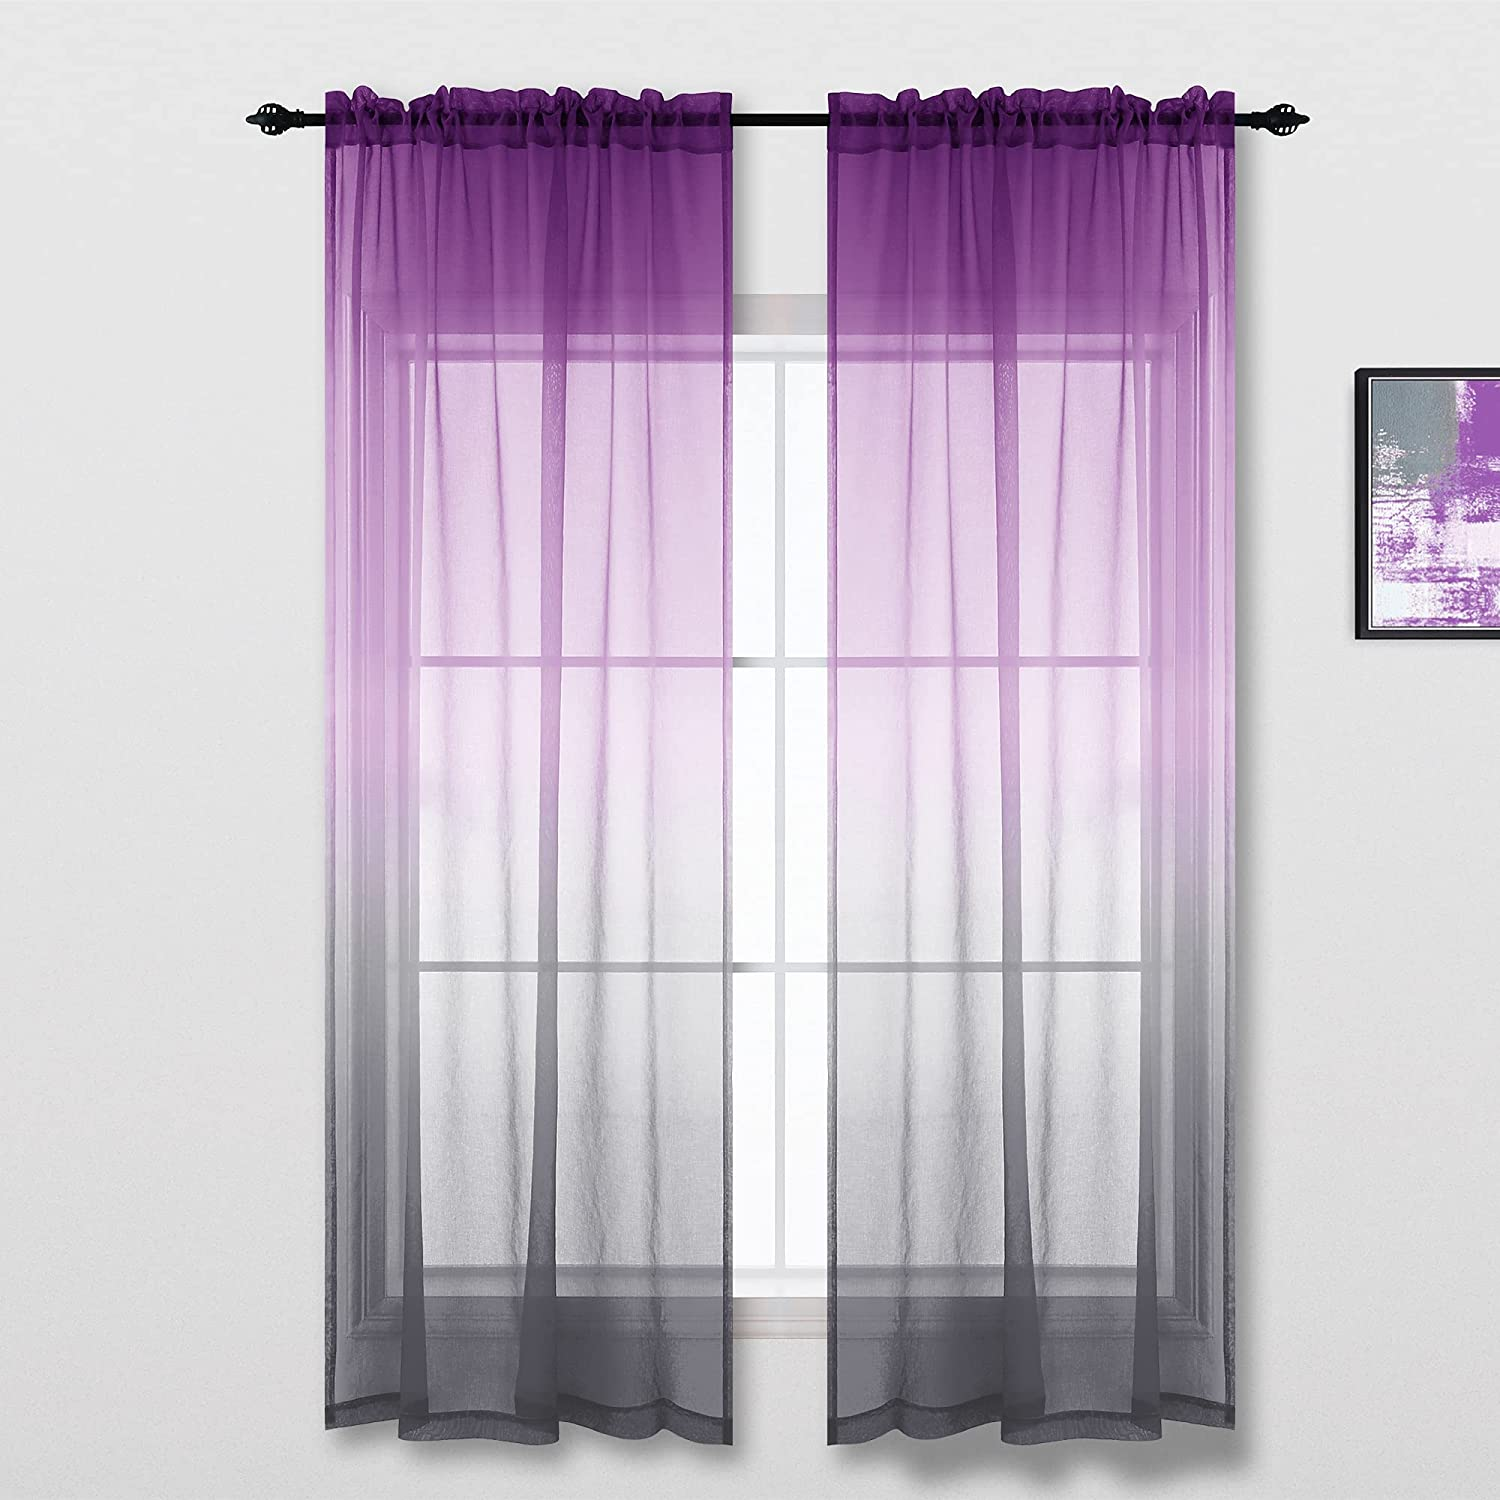 Purple and Grey Curtains for Glam Decor Ombre Accent Sheer Decorative Curtains for Living Room Bedroom Decorations Plum and Gray